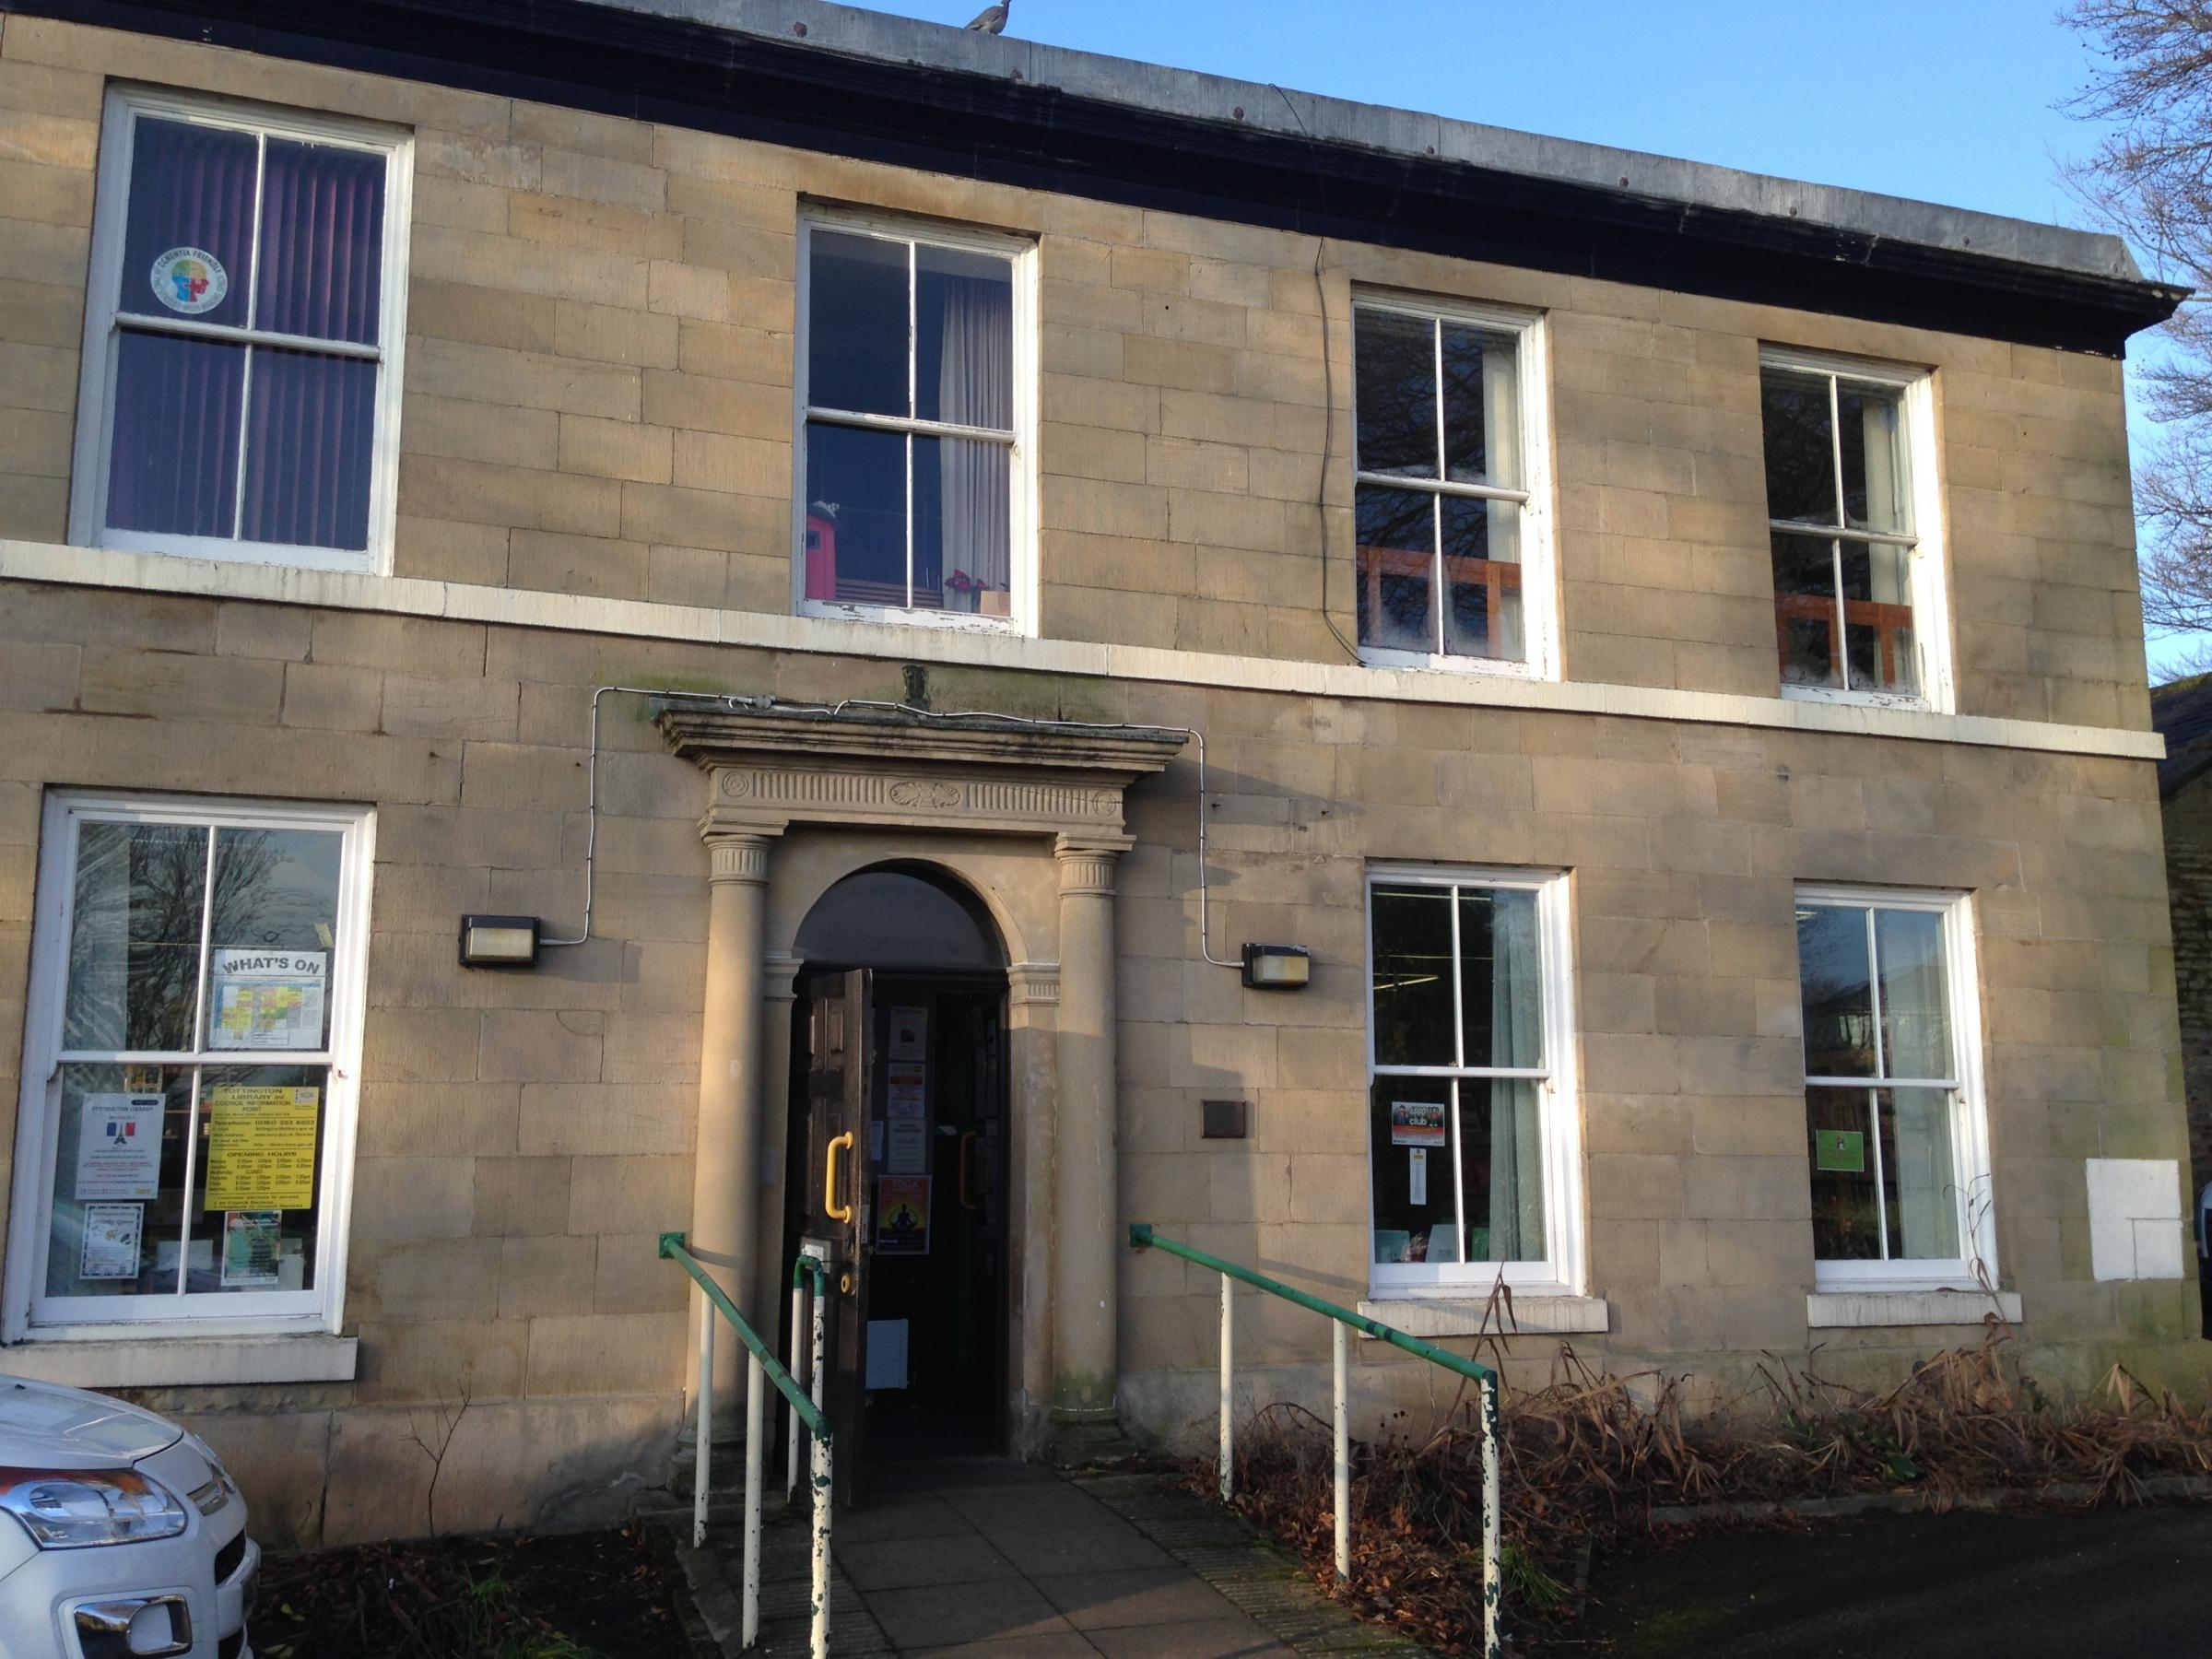 SHUTTING: Tottington Library, one of the buildings due to close